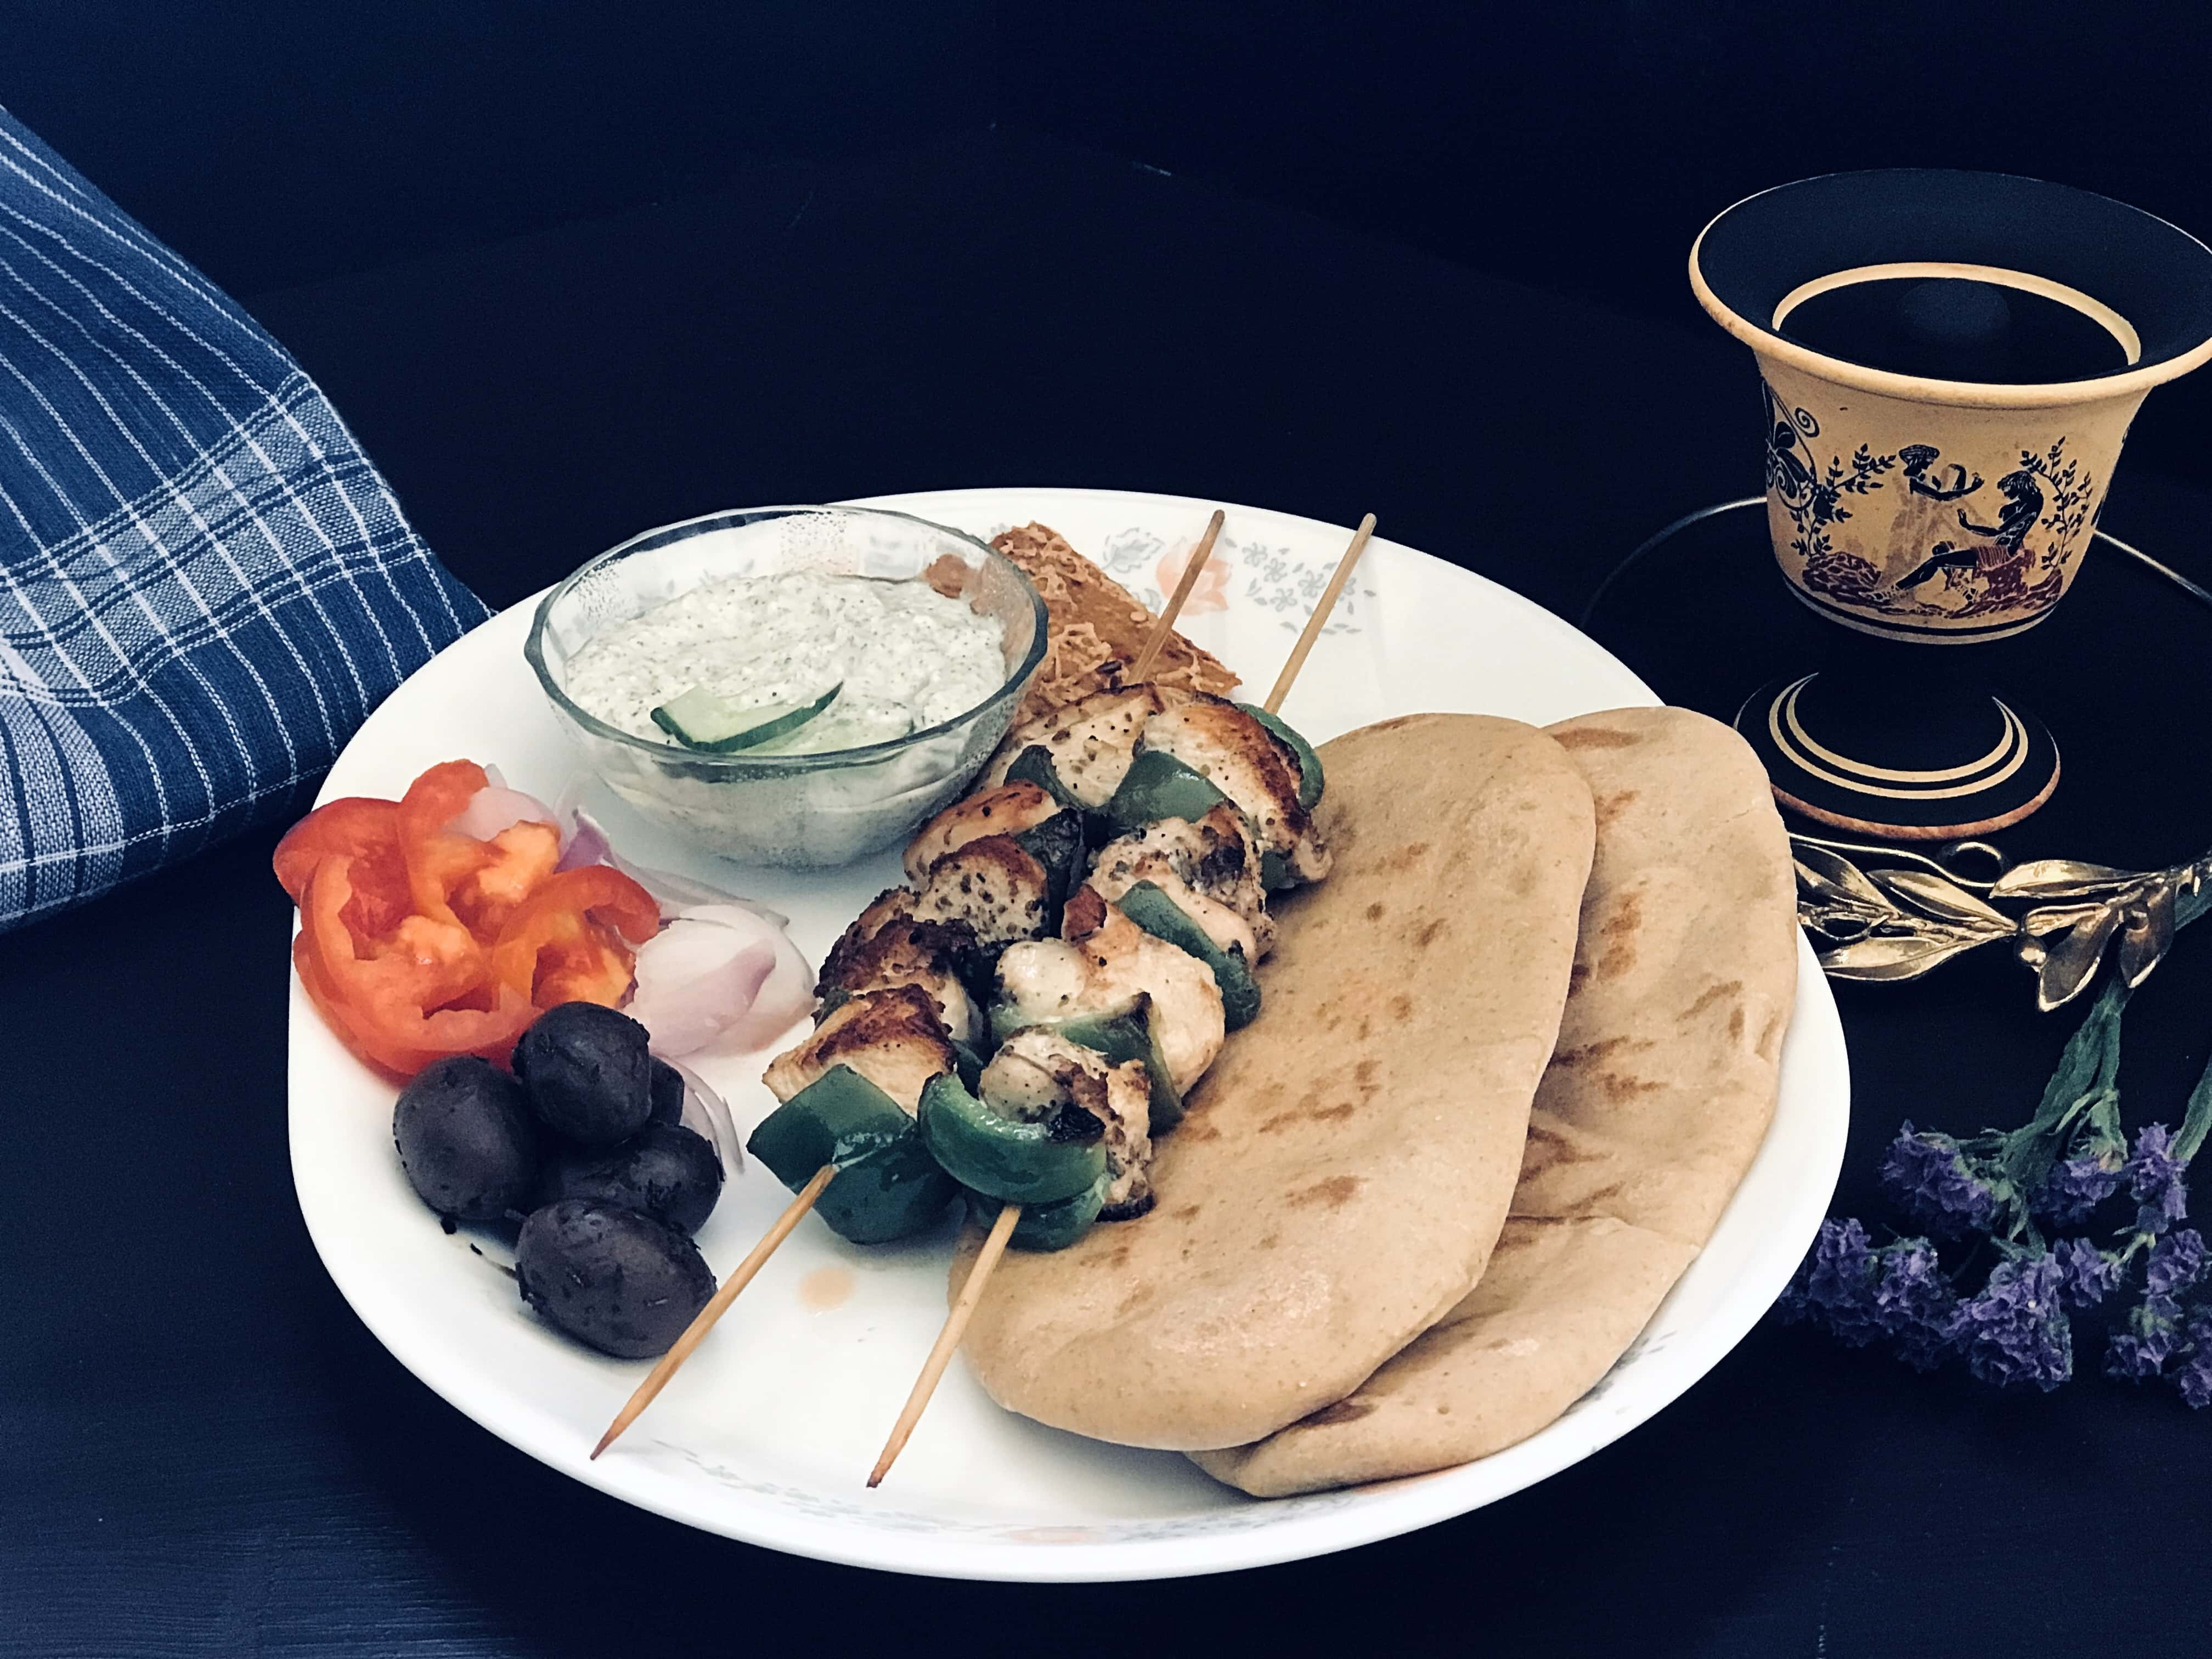 Greek Souvlaki, from the corner table, #fromthecornertable